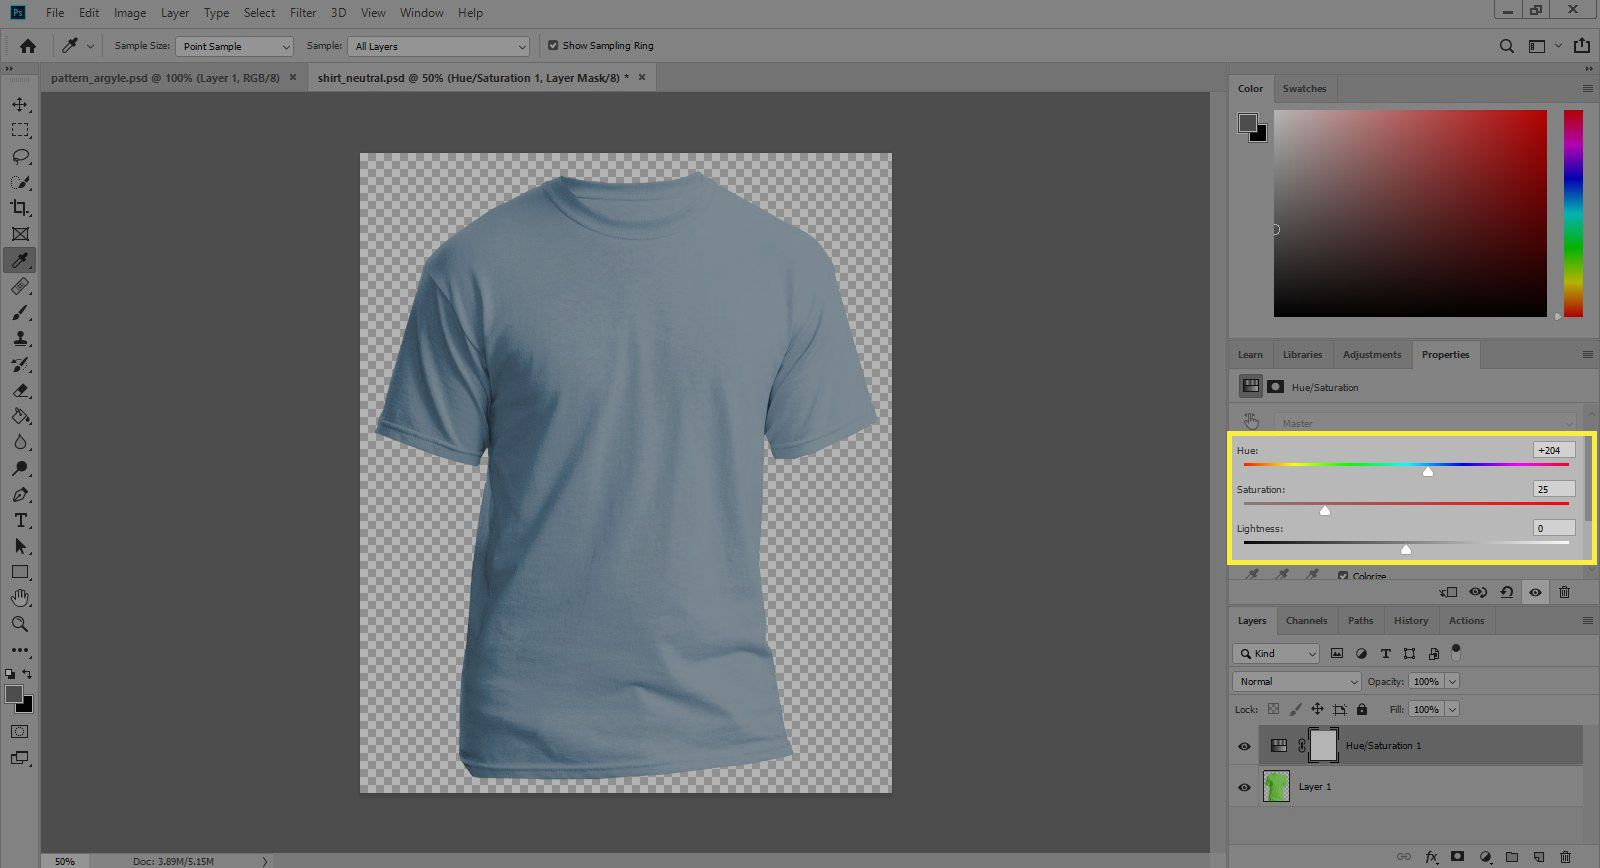 A screenshot of Photoshop's Adjustments window with the Hue, Saturation, and Lightness options highlighted